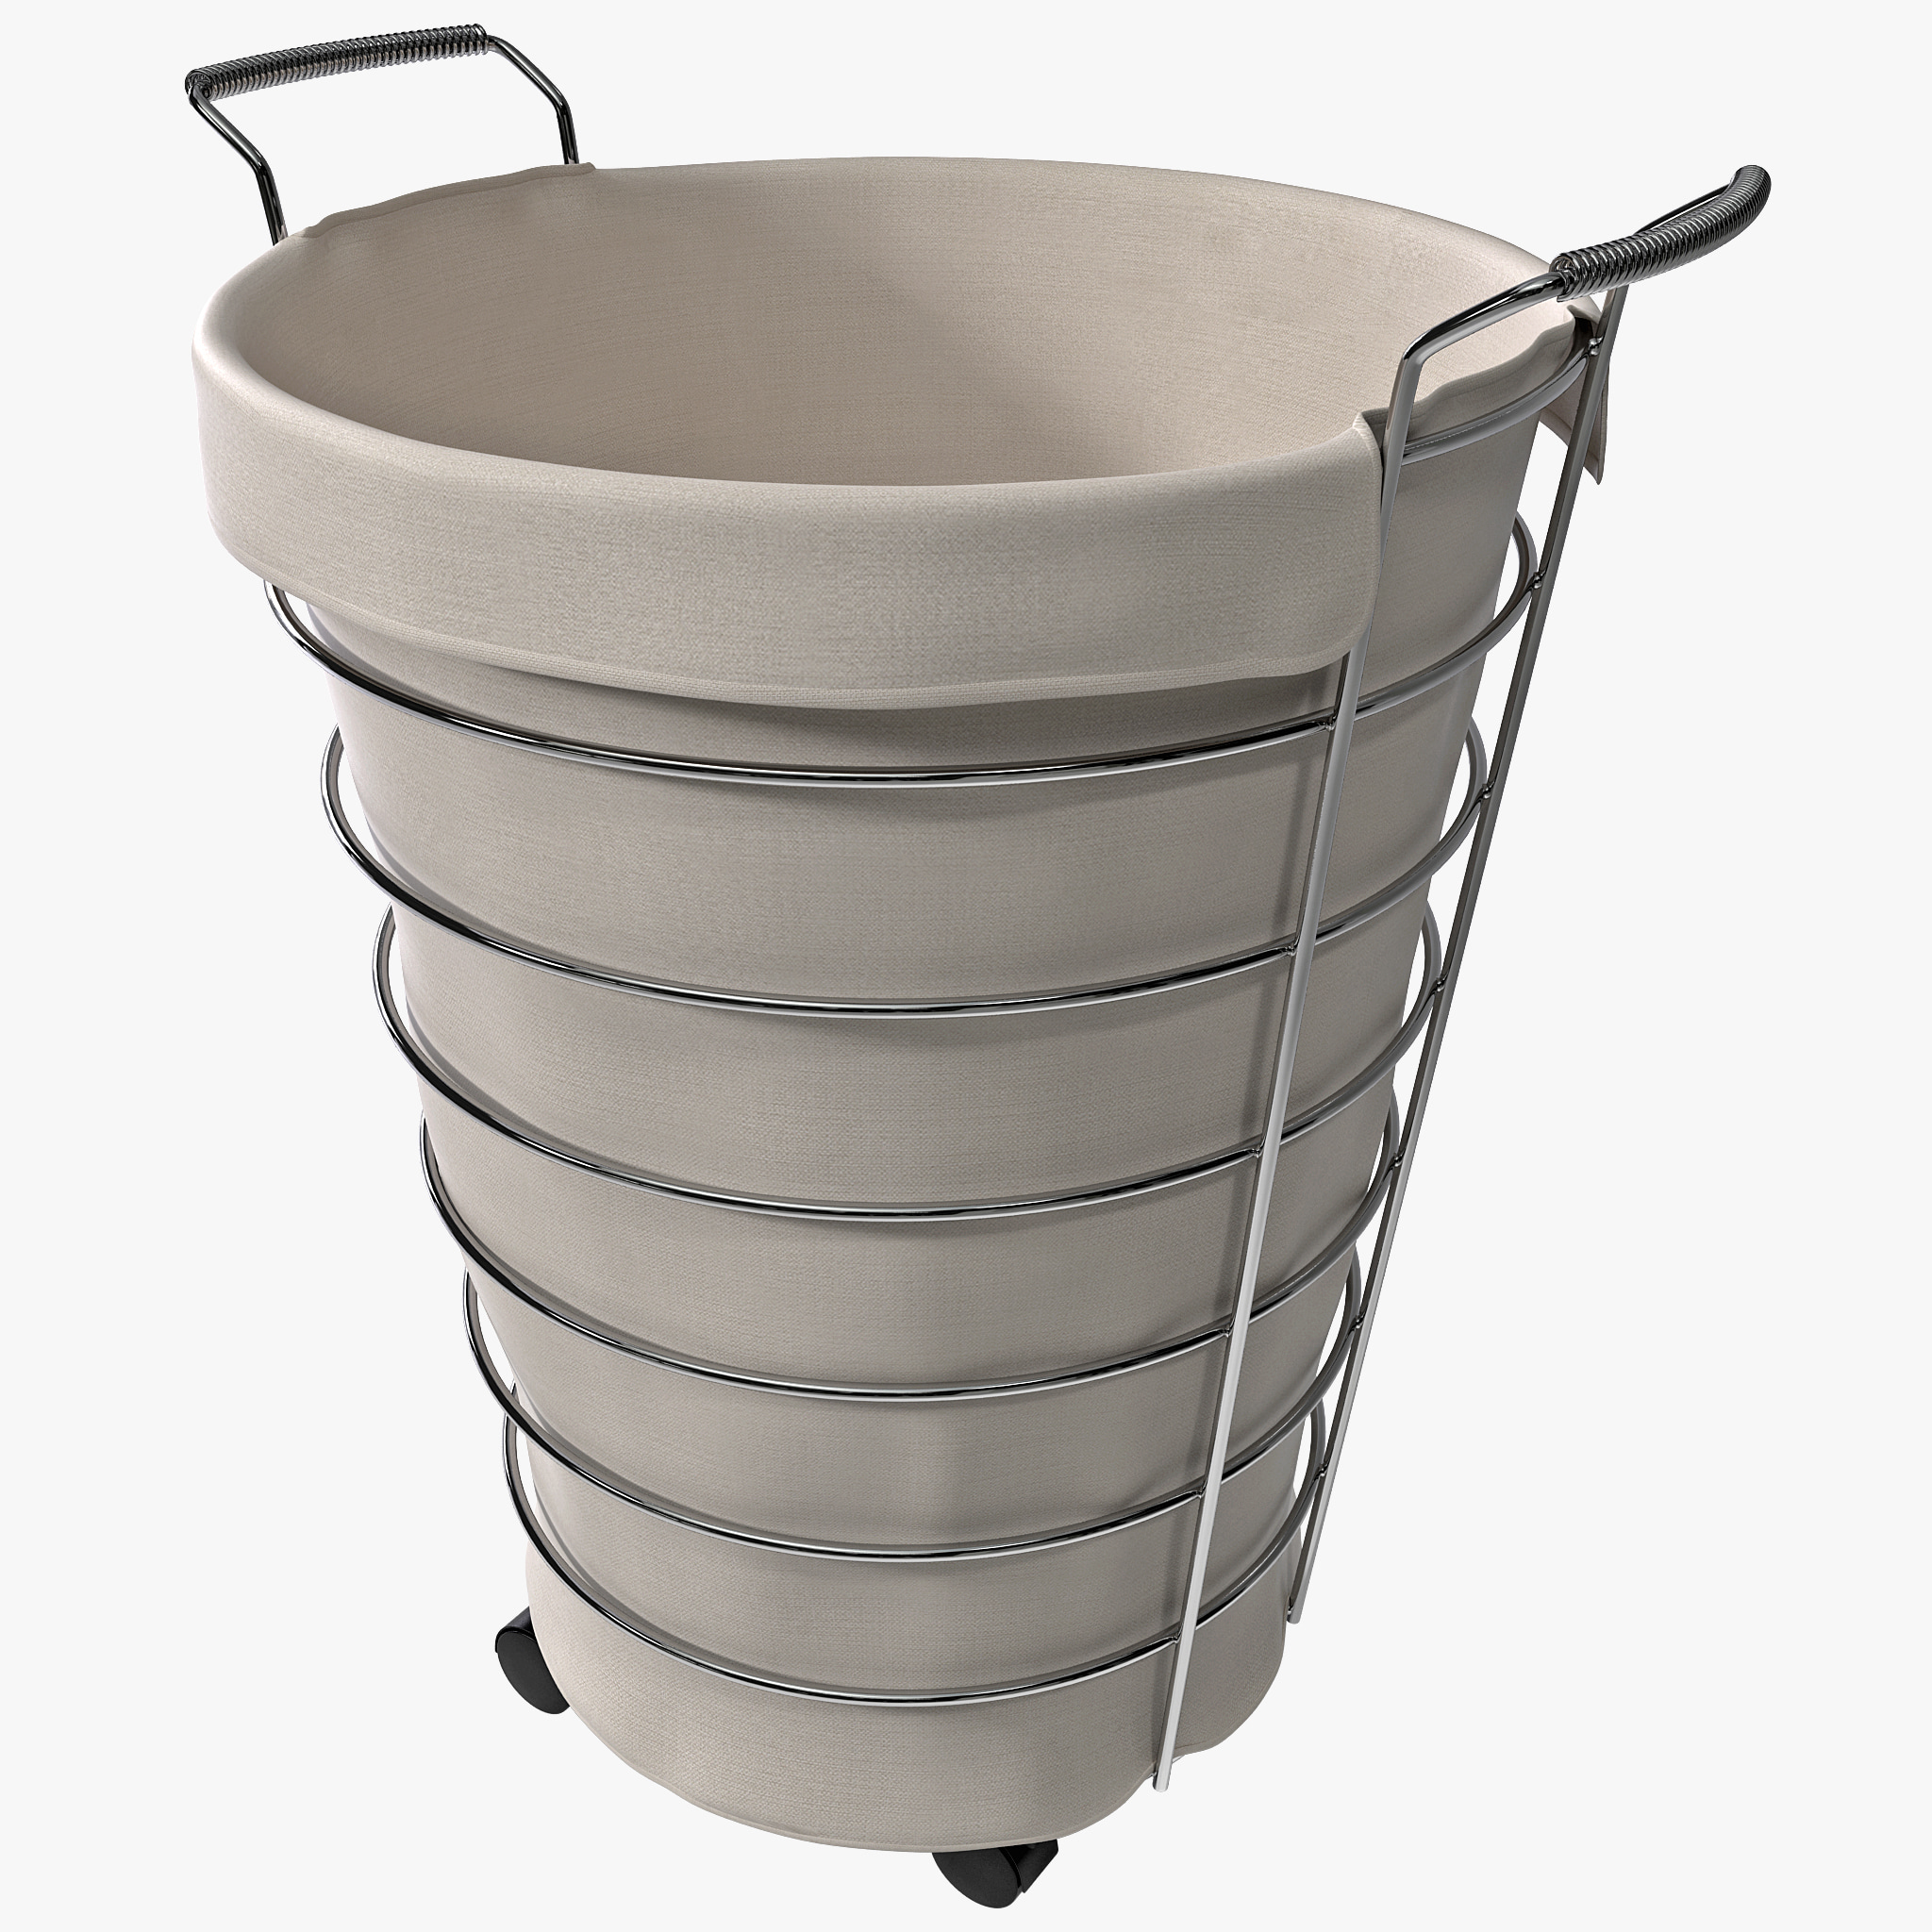 Chrome Laundry Basket Chrome Rolling Hamper 3d Max